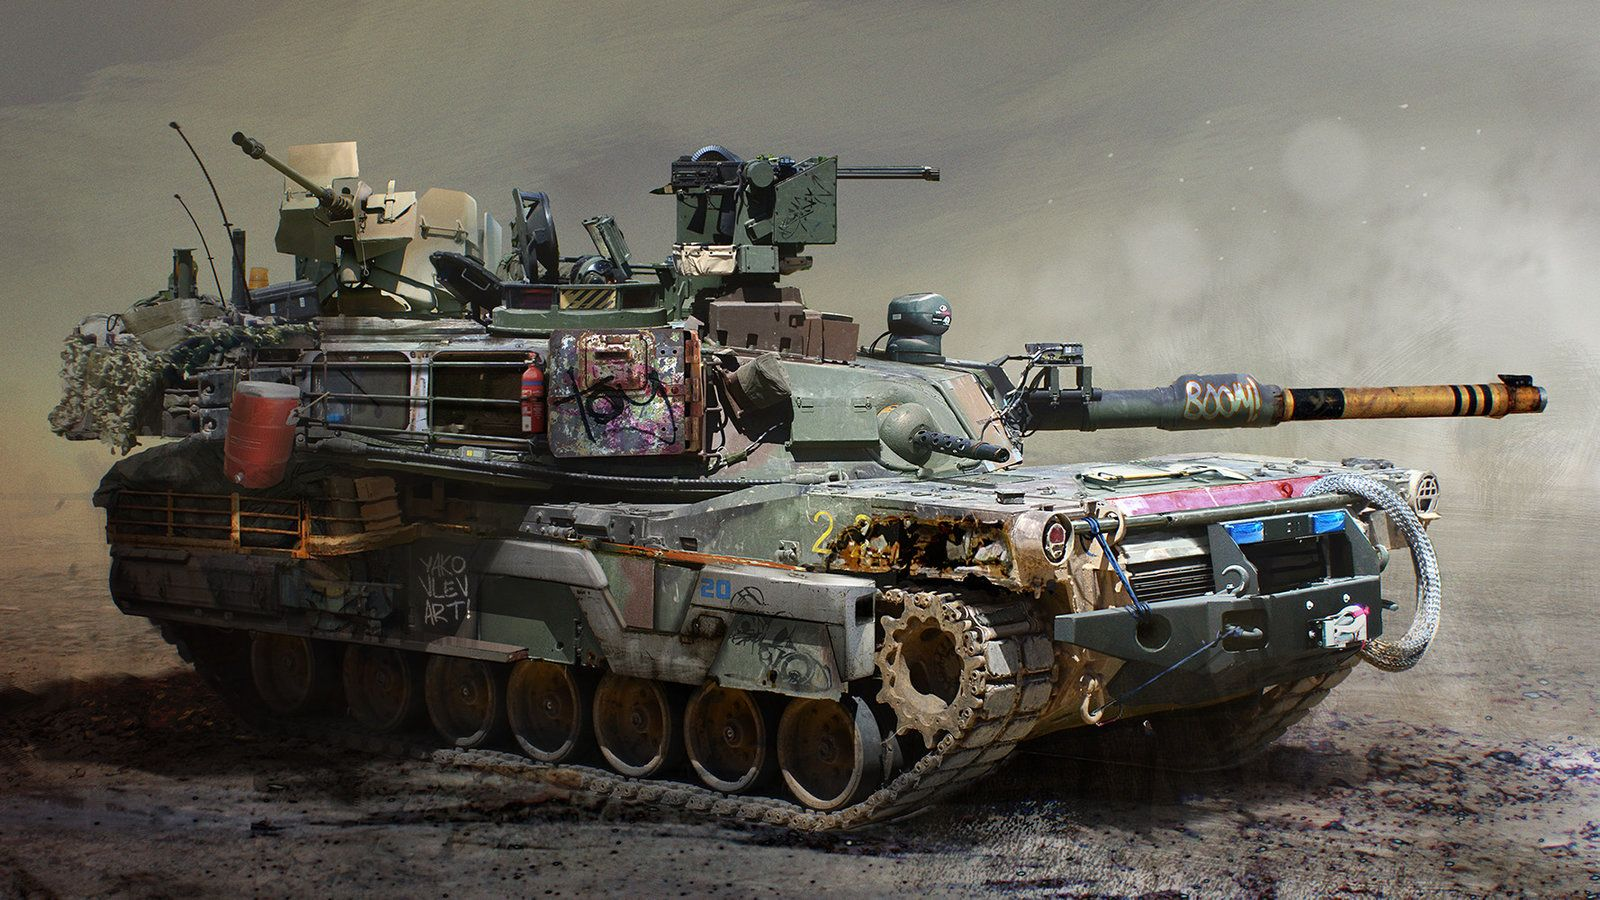 Post apocalyptic tank image i made recently super fun as always learned a lot more about photobashing